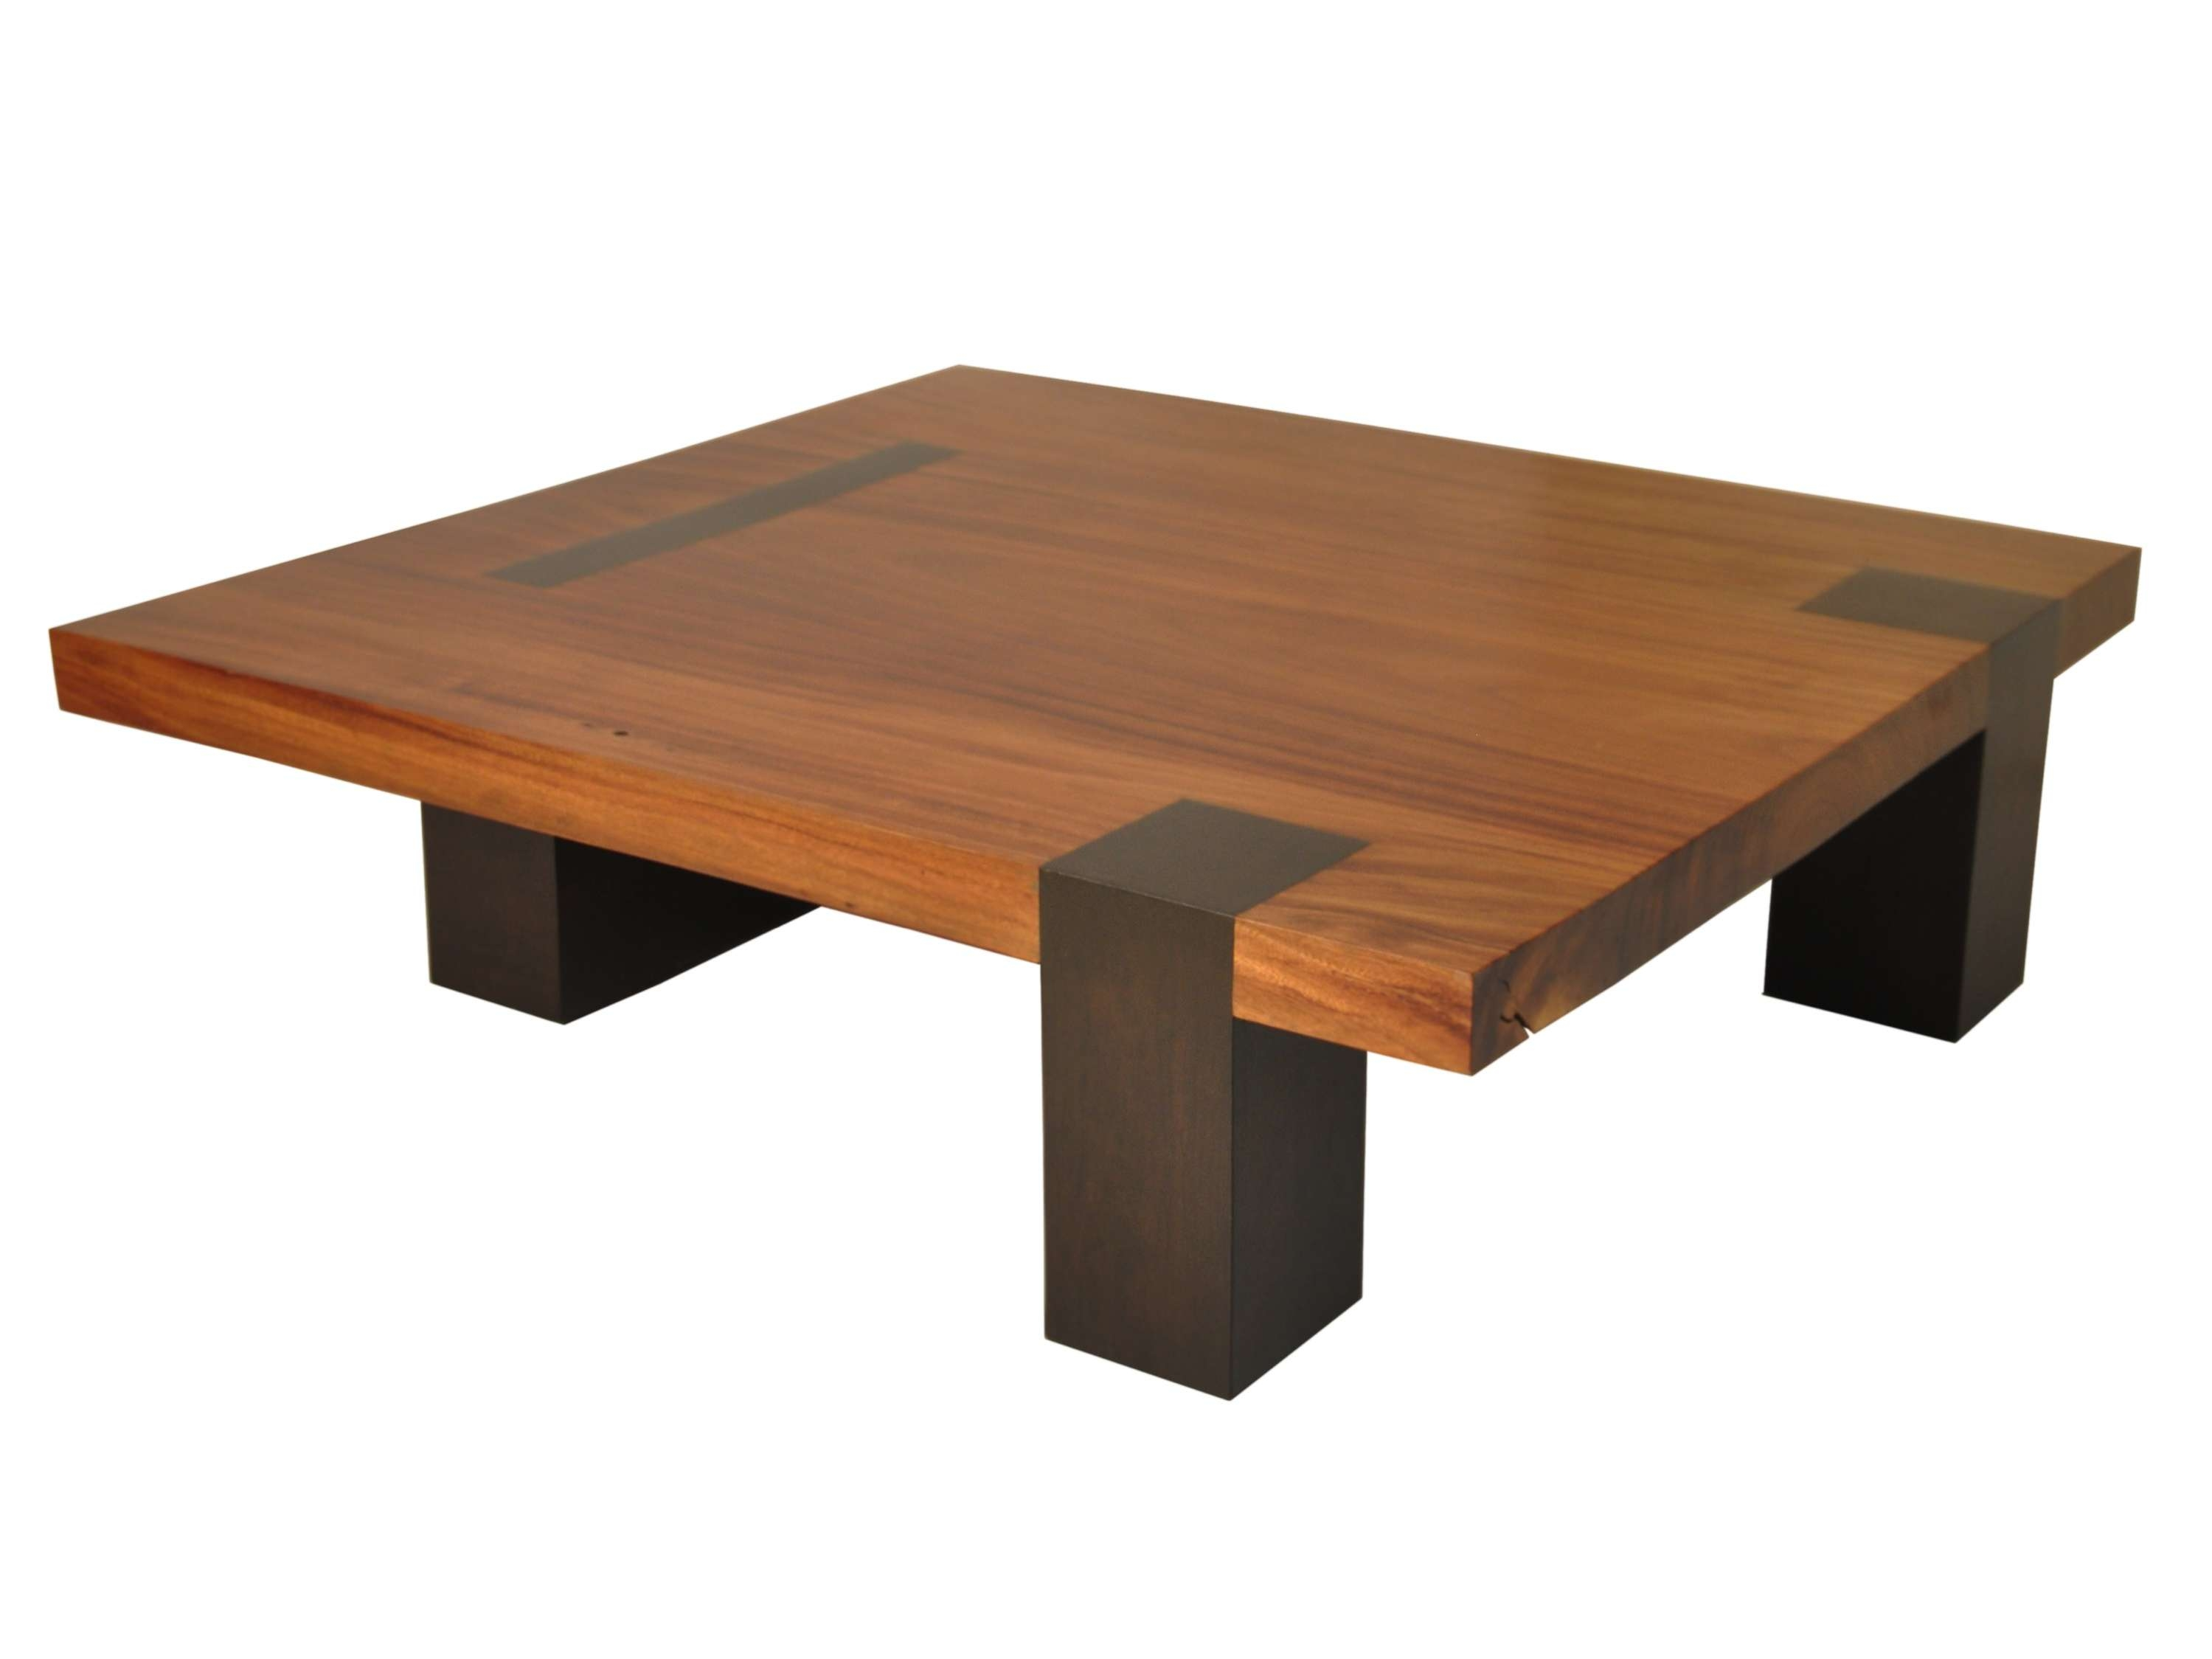 Coffee Tables Ideas: Best Wood Square Coffee Table With Storage With Regard To Famous Large Square Coffee Table With Storage (View 2 of 20)